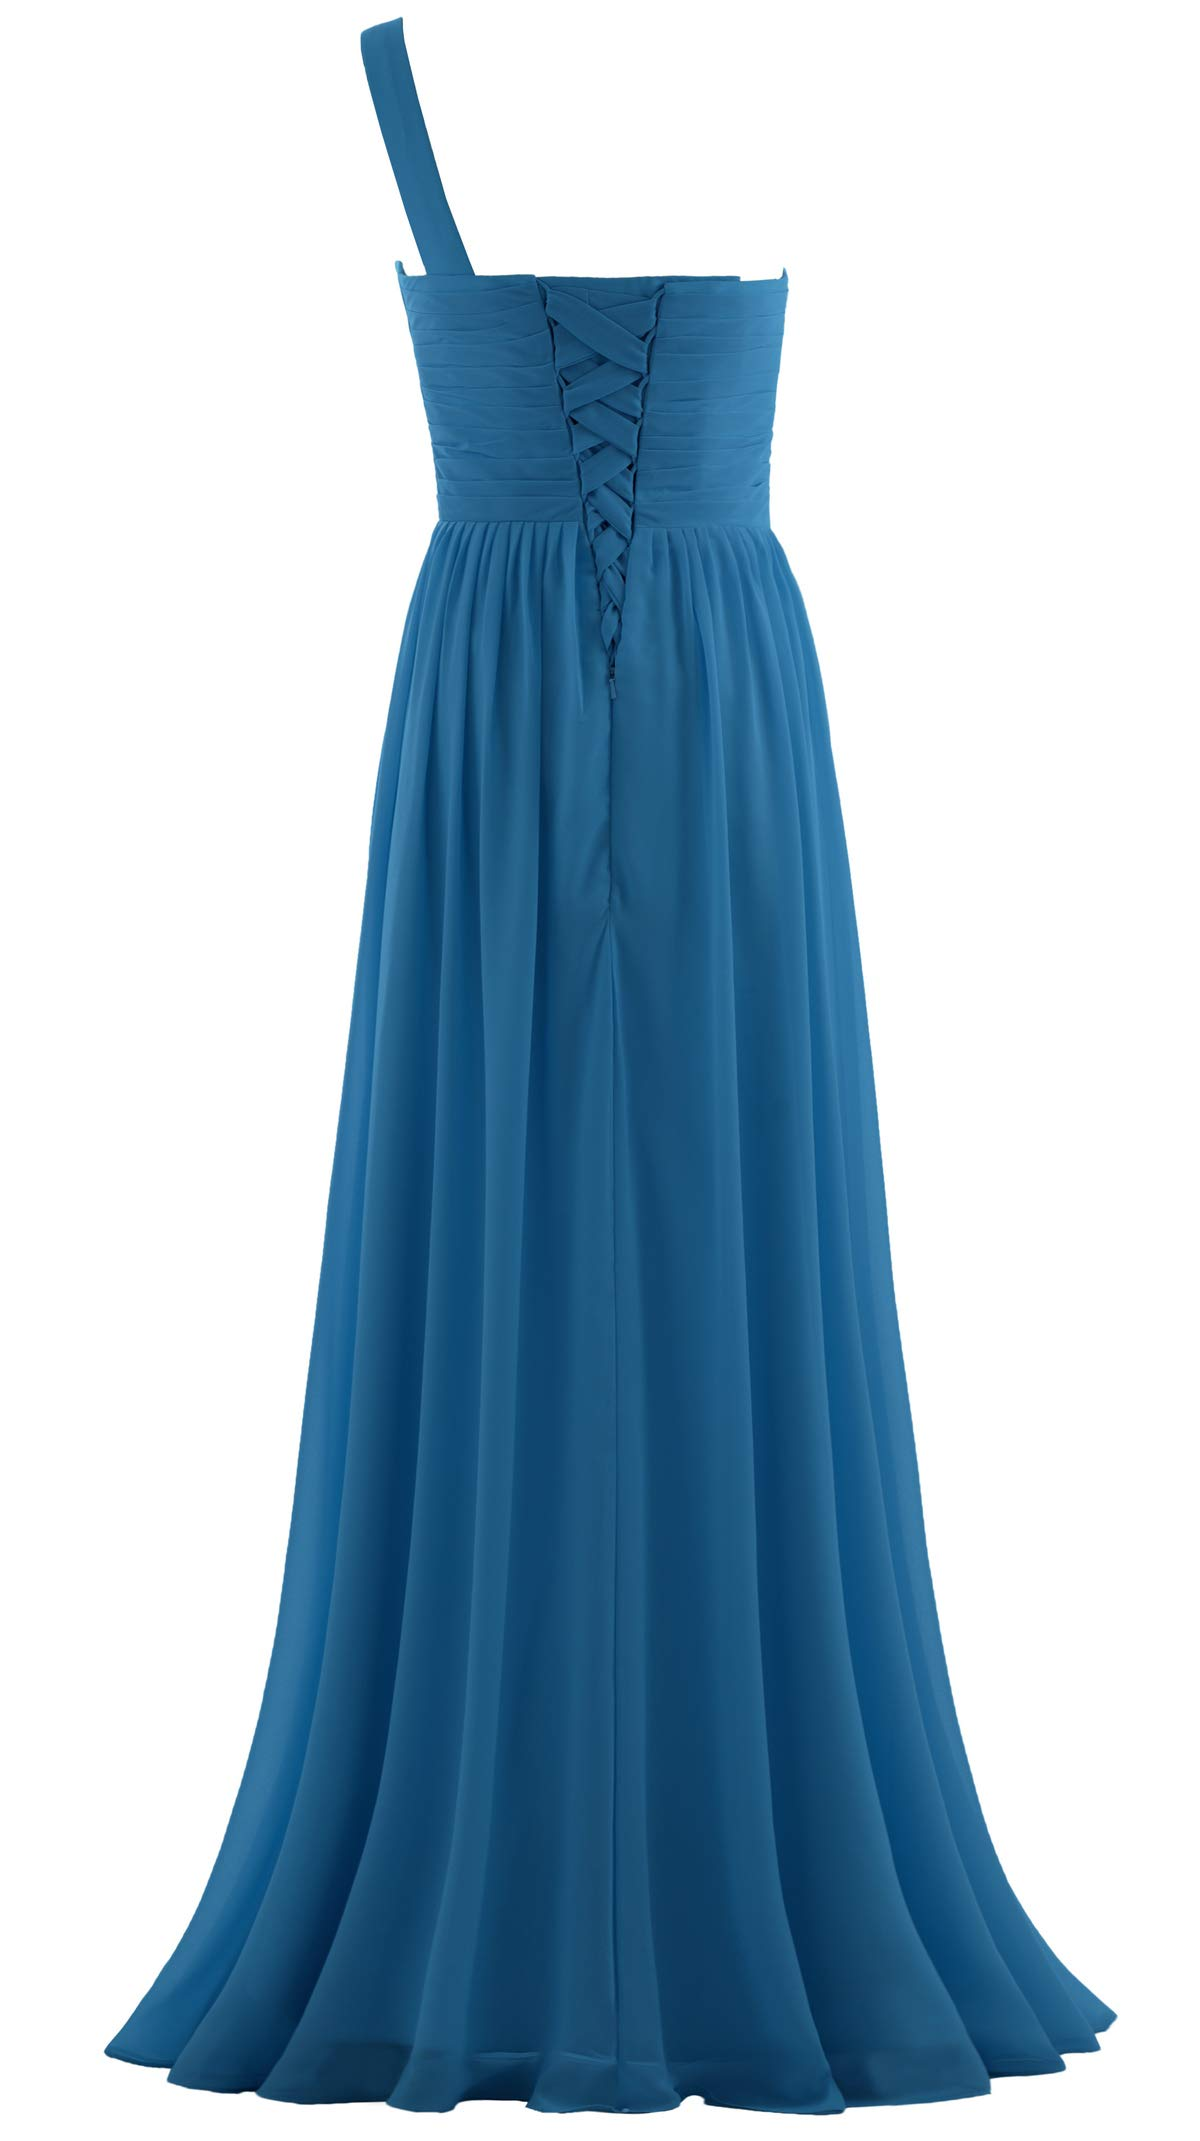 ANTS Womens Pleat Chiffon One Shoulder Bridesmaid Dresses Long Evening Gown